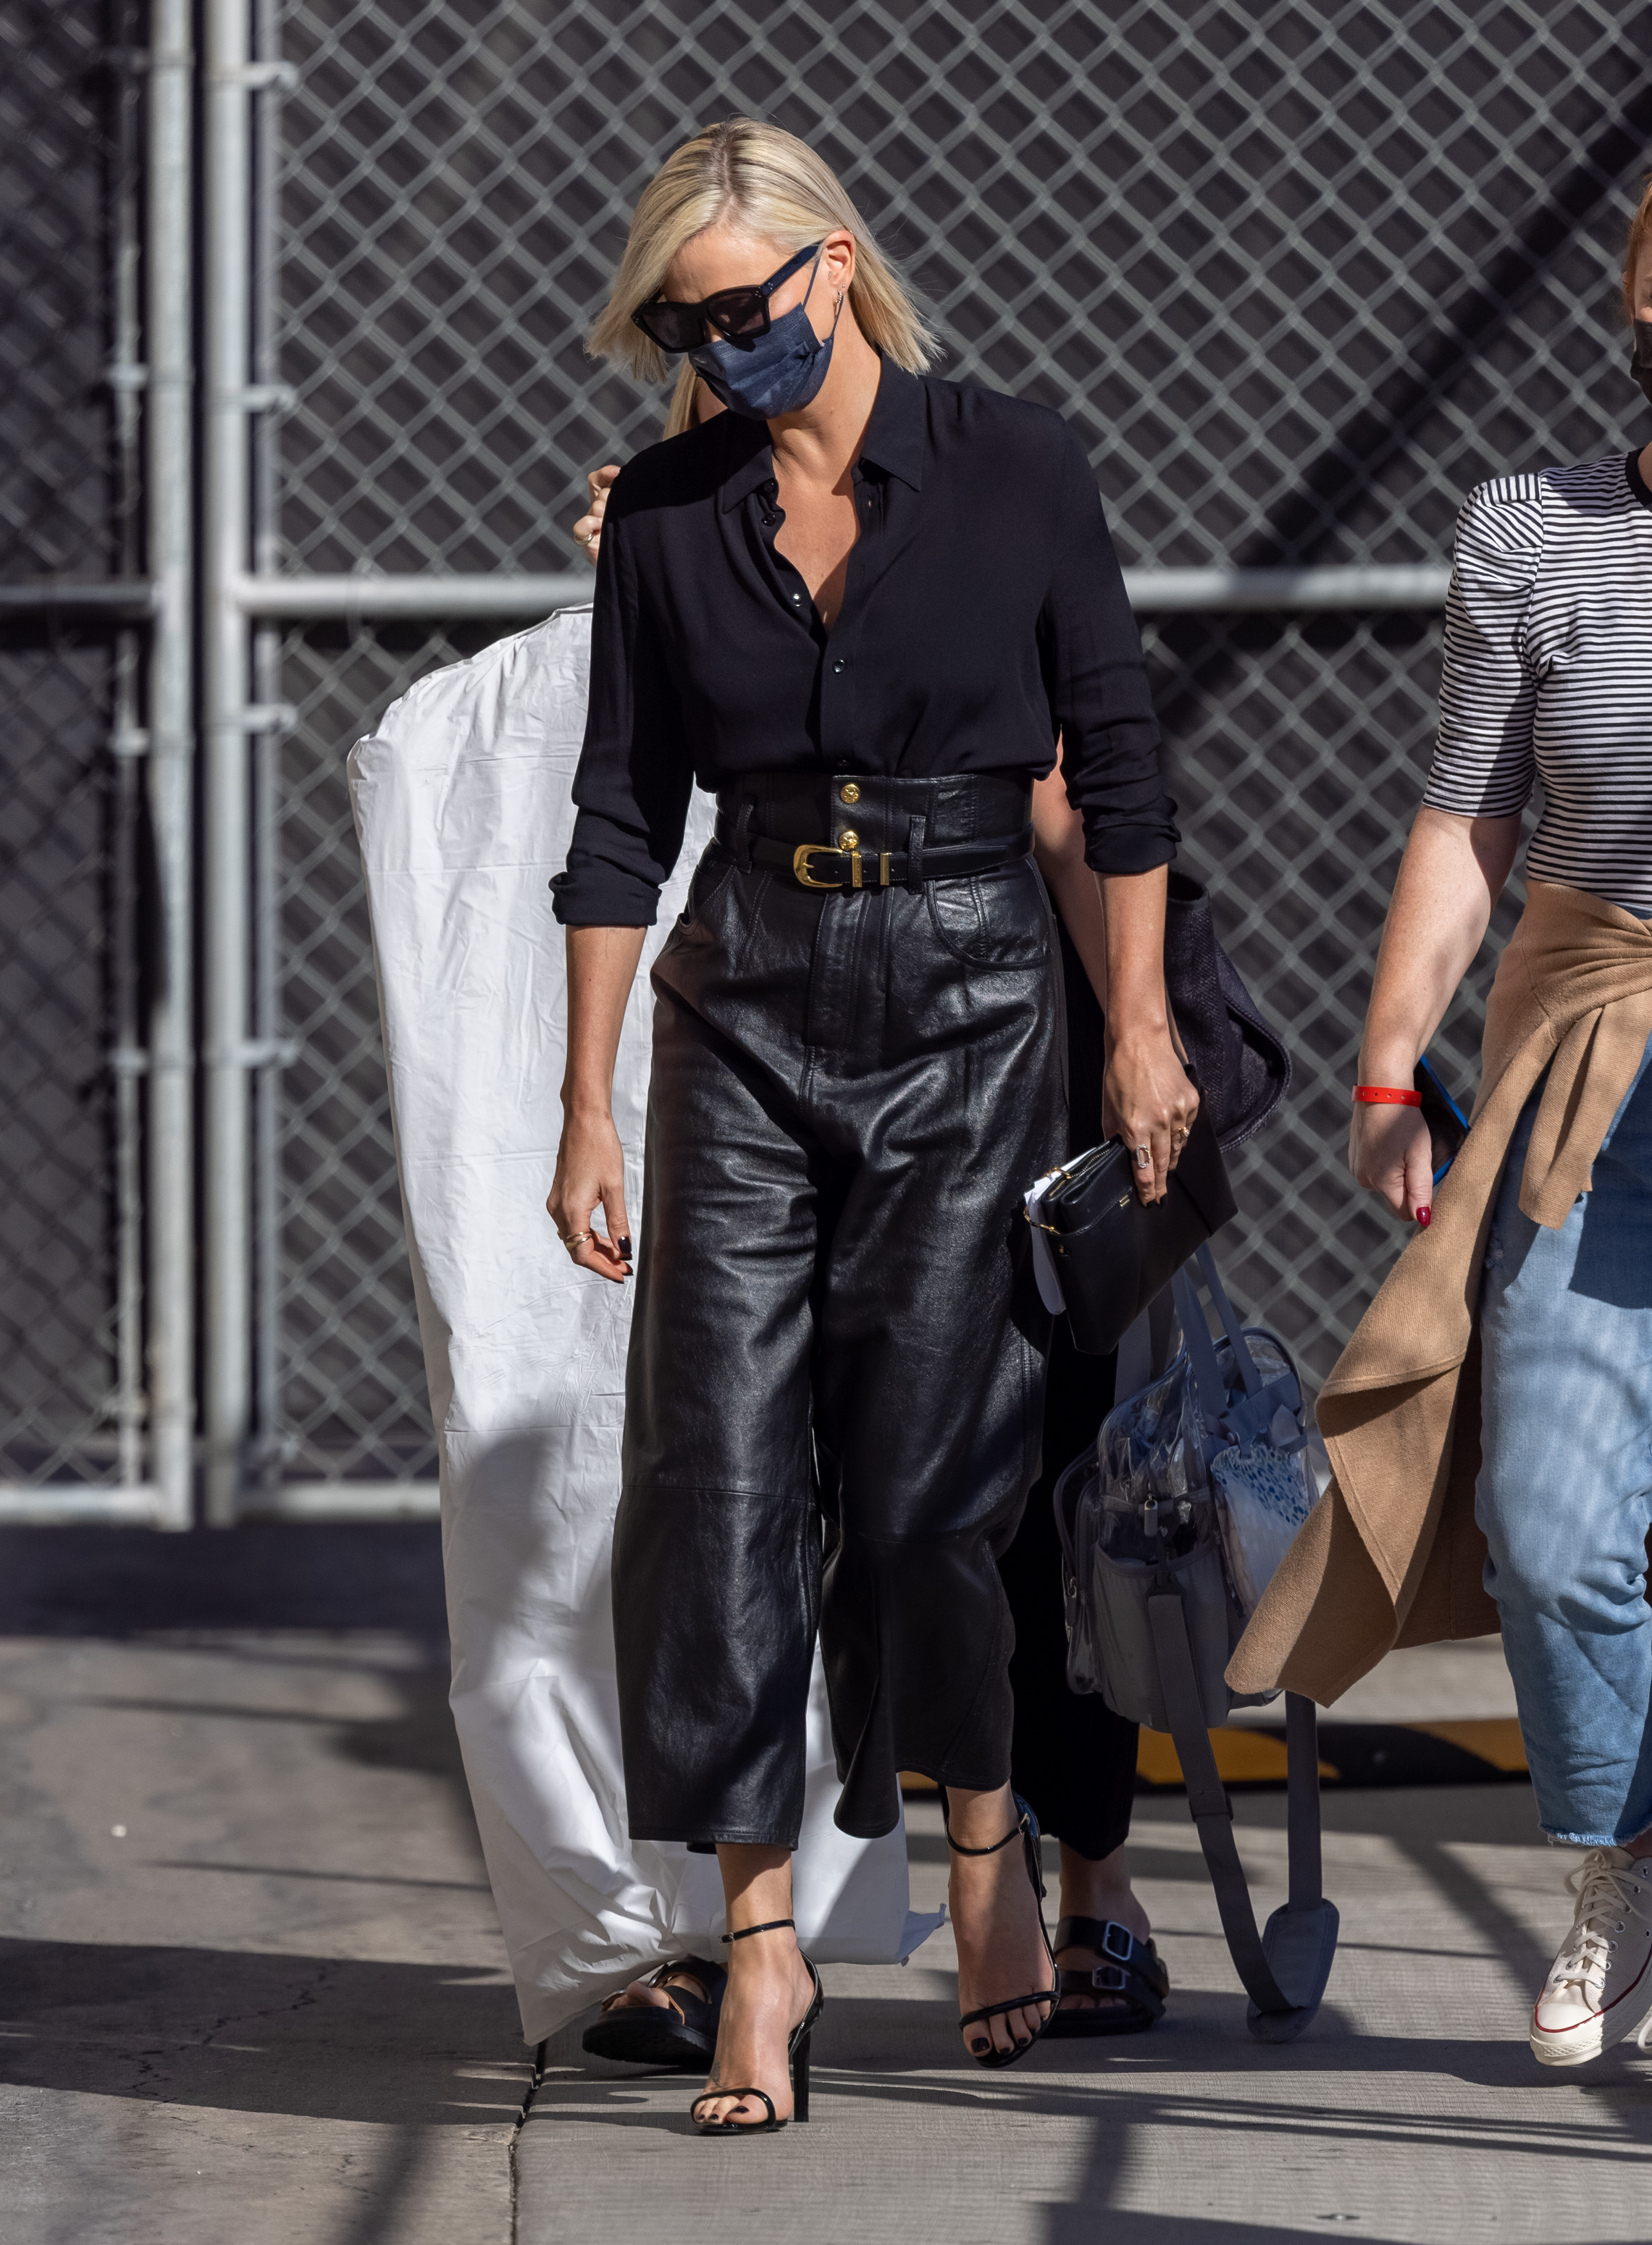 """Charlize Theron is seen at """"Jimmy Kimmel Live"""" in Los Angeles, California. 30 Sep 2021 Pictured: Charlize Theron. Photo credit: RB/Bauergriffin.com / MEGA TheMegaAgency.com +1 888 505 6342 (Mega Agency TagID: MEGA792371_001.jpg) [Photo via Mega Agency]"""